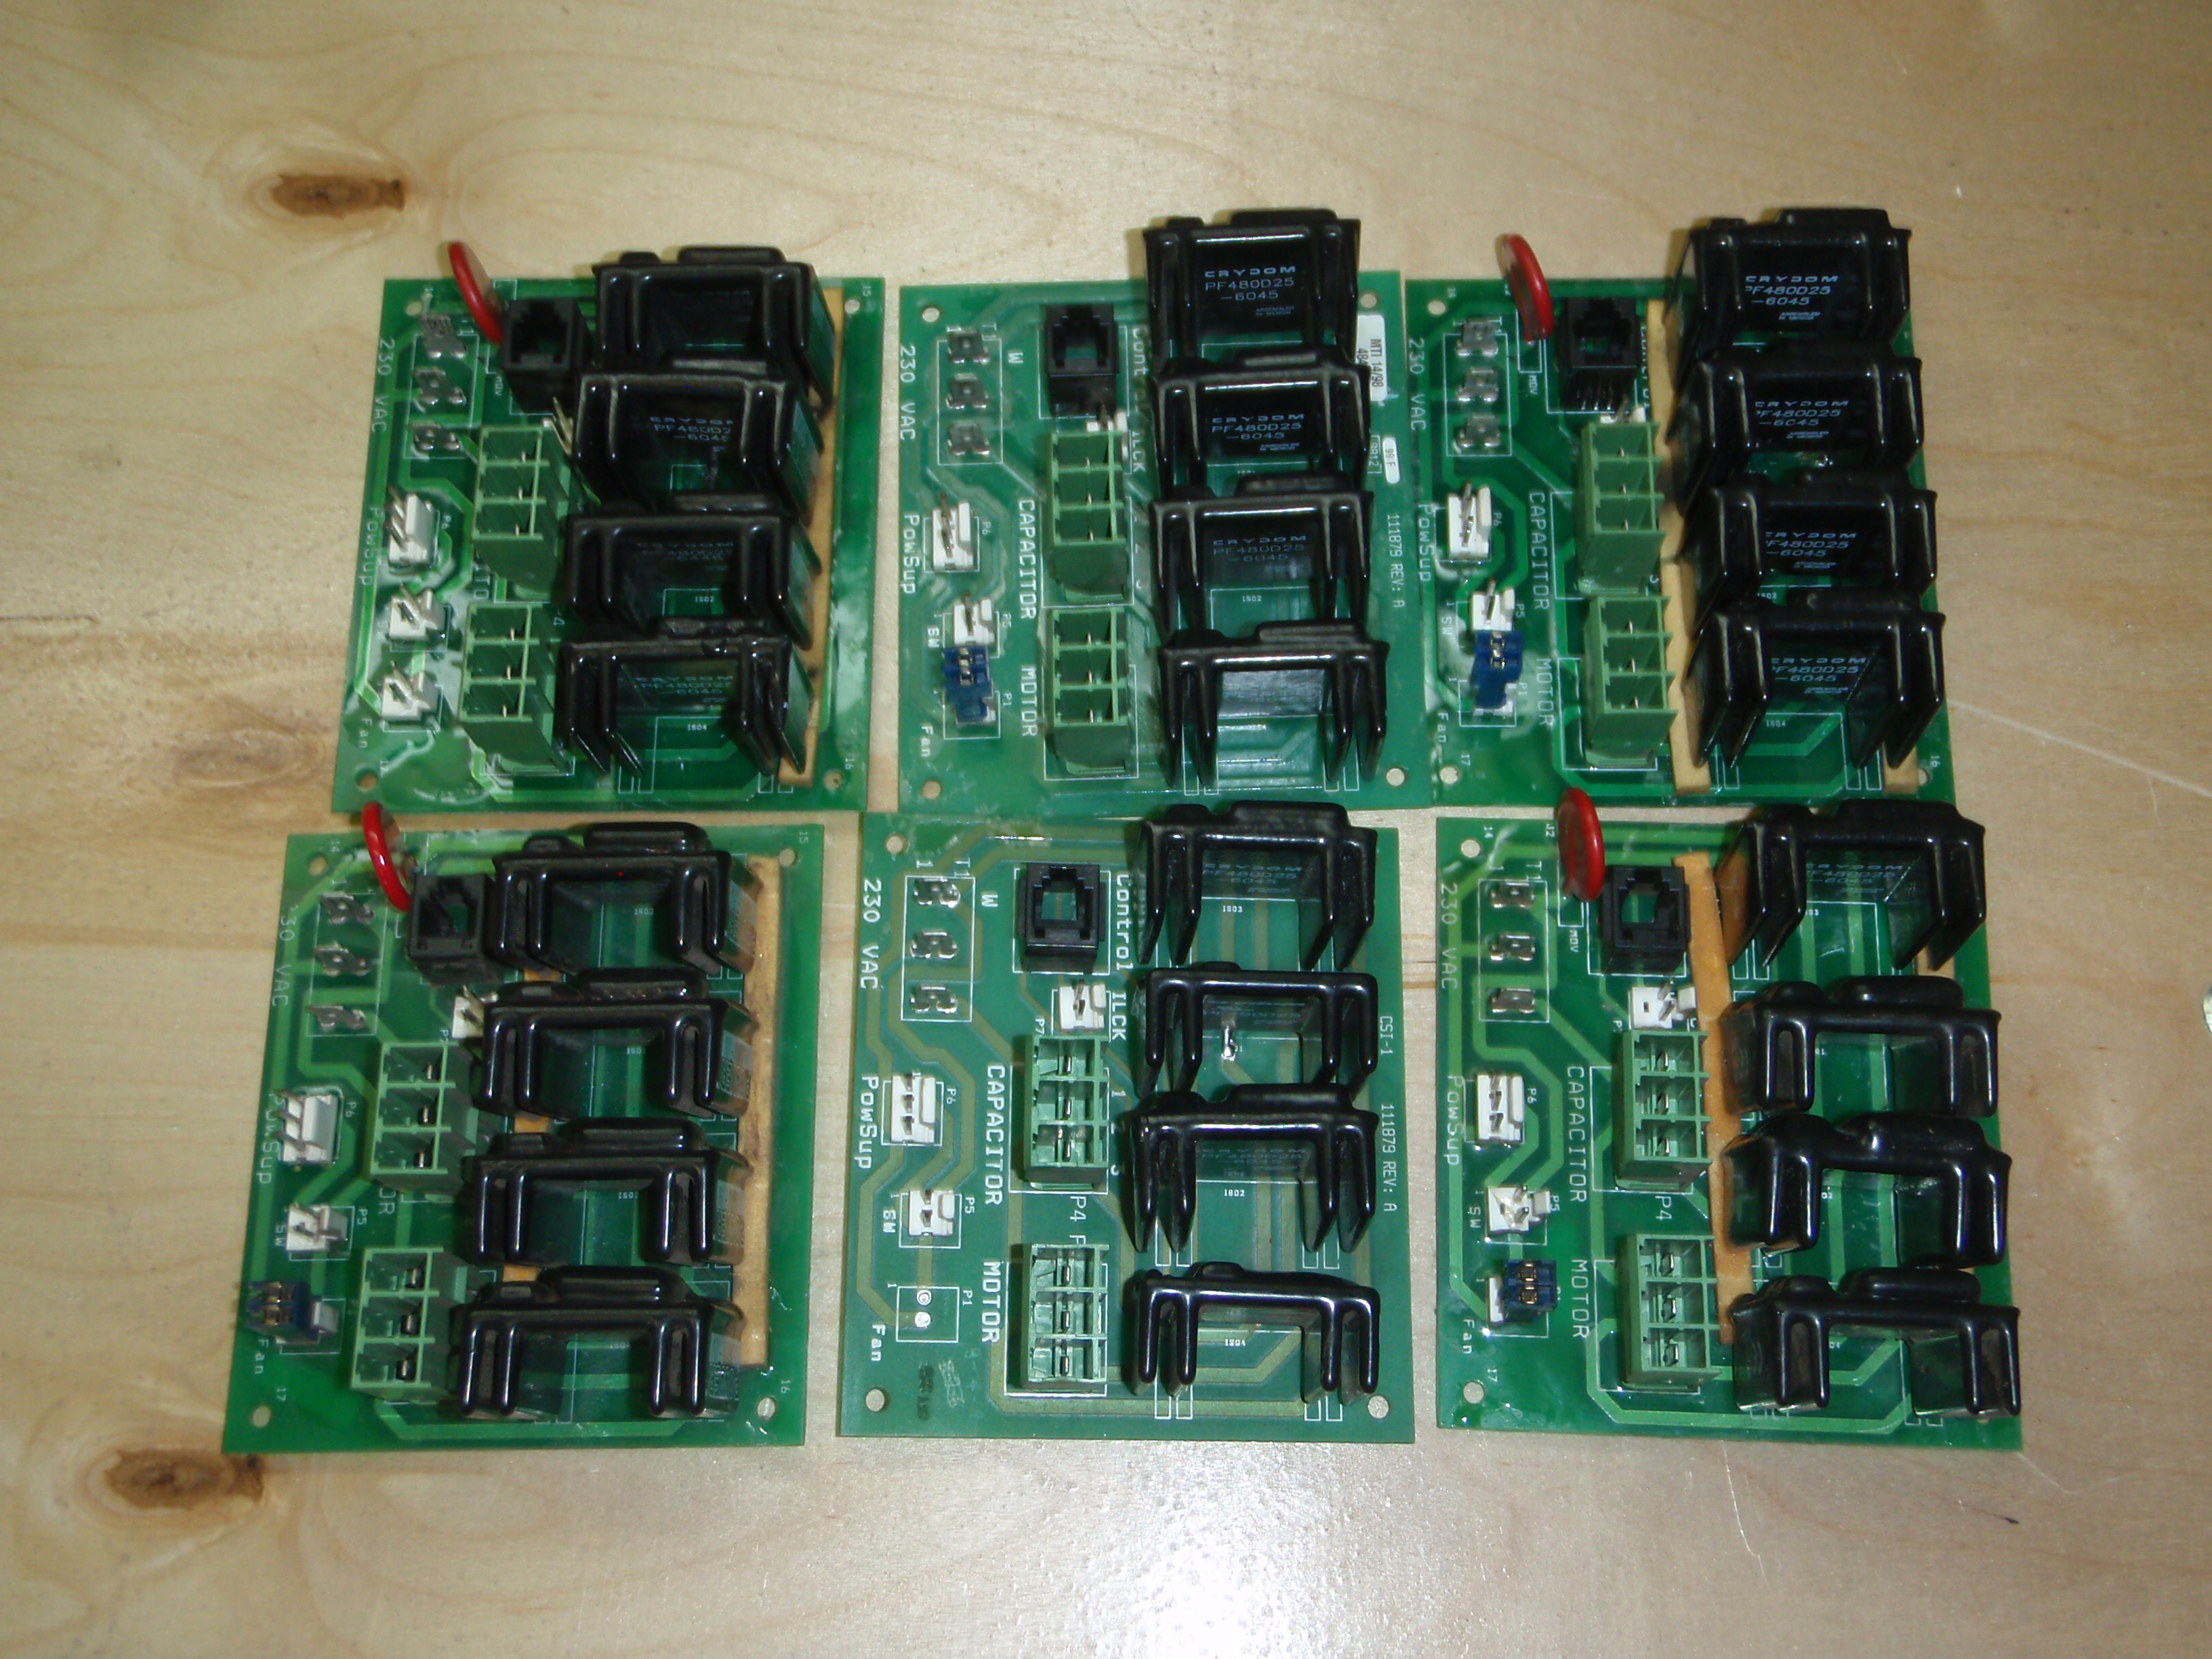 Coats Motor Control PCB Repair Part# 8111879